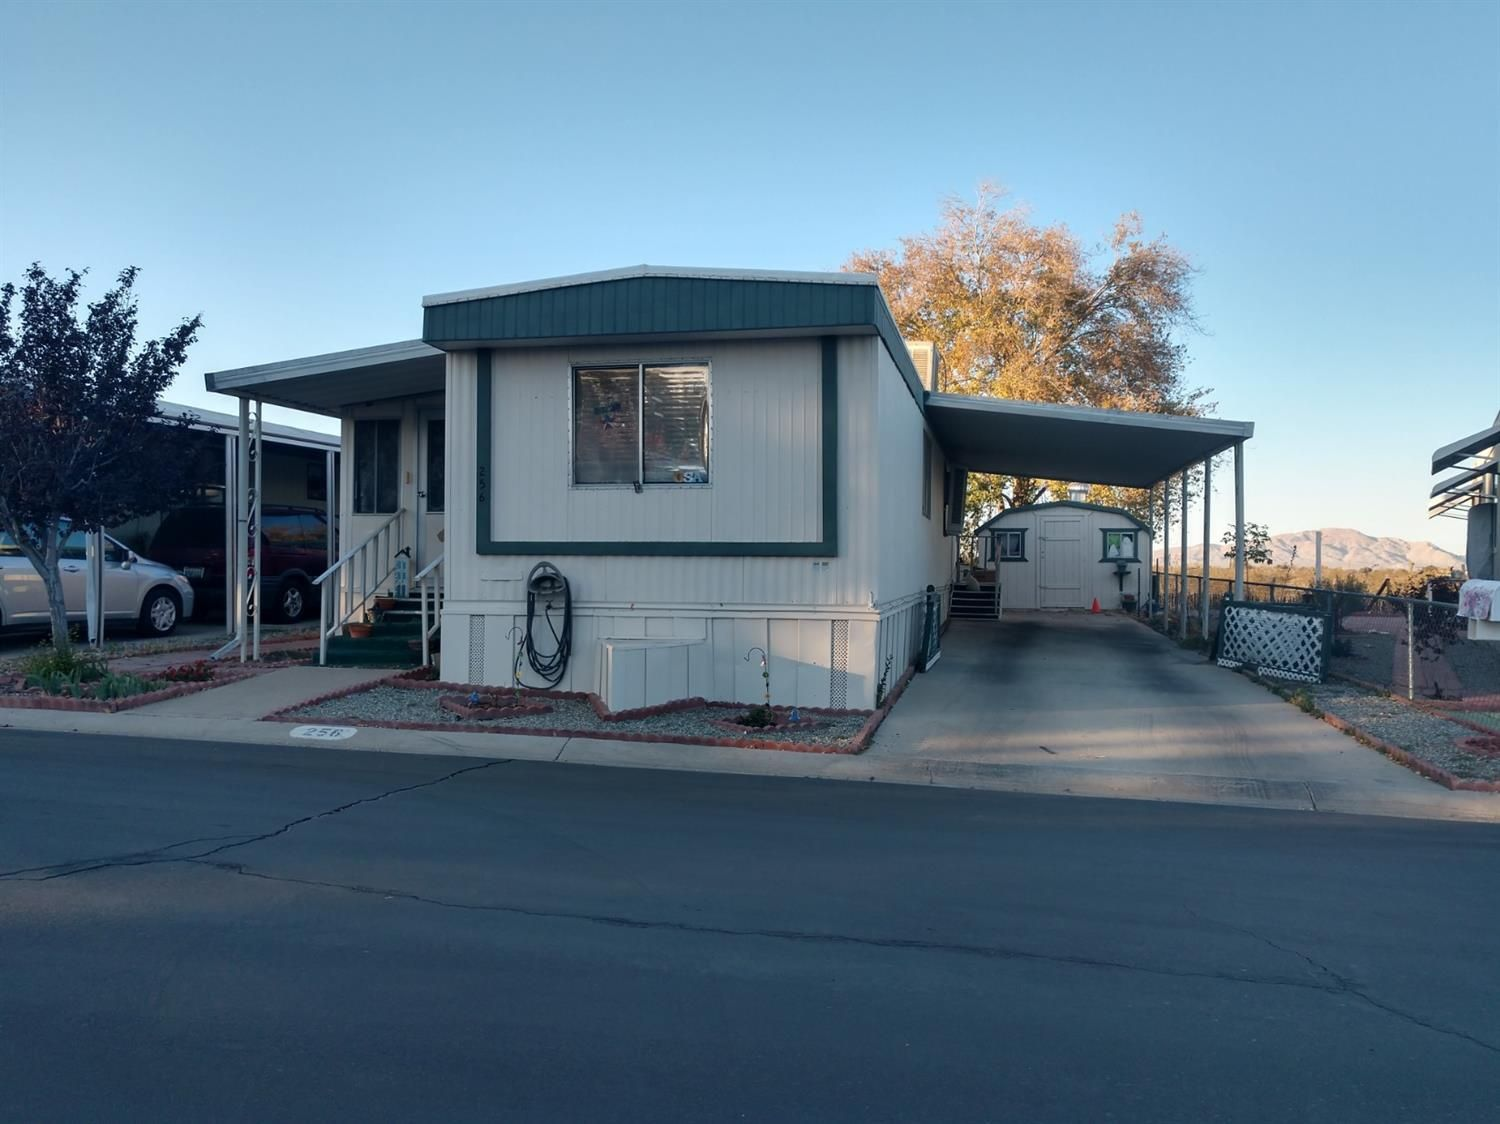 13393 Mariposa Rd #256, Victorville, CA 92395 - 1 Bed, 1 ...